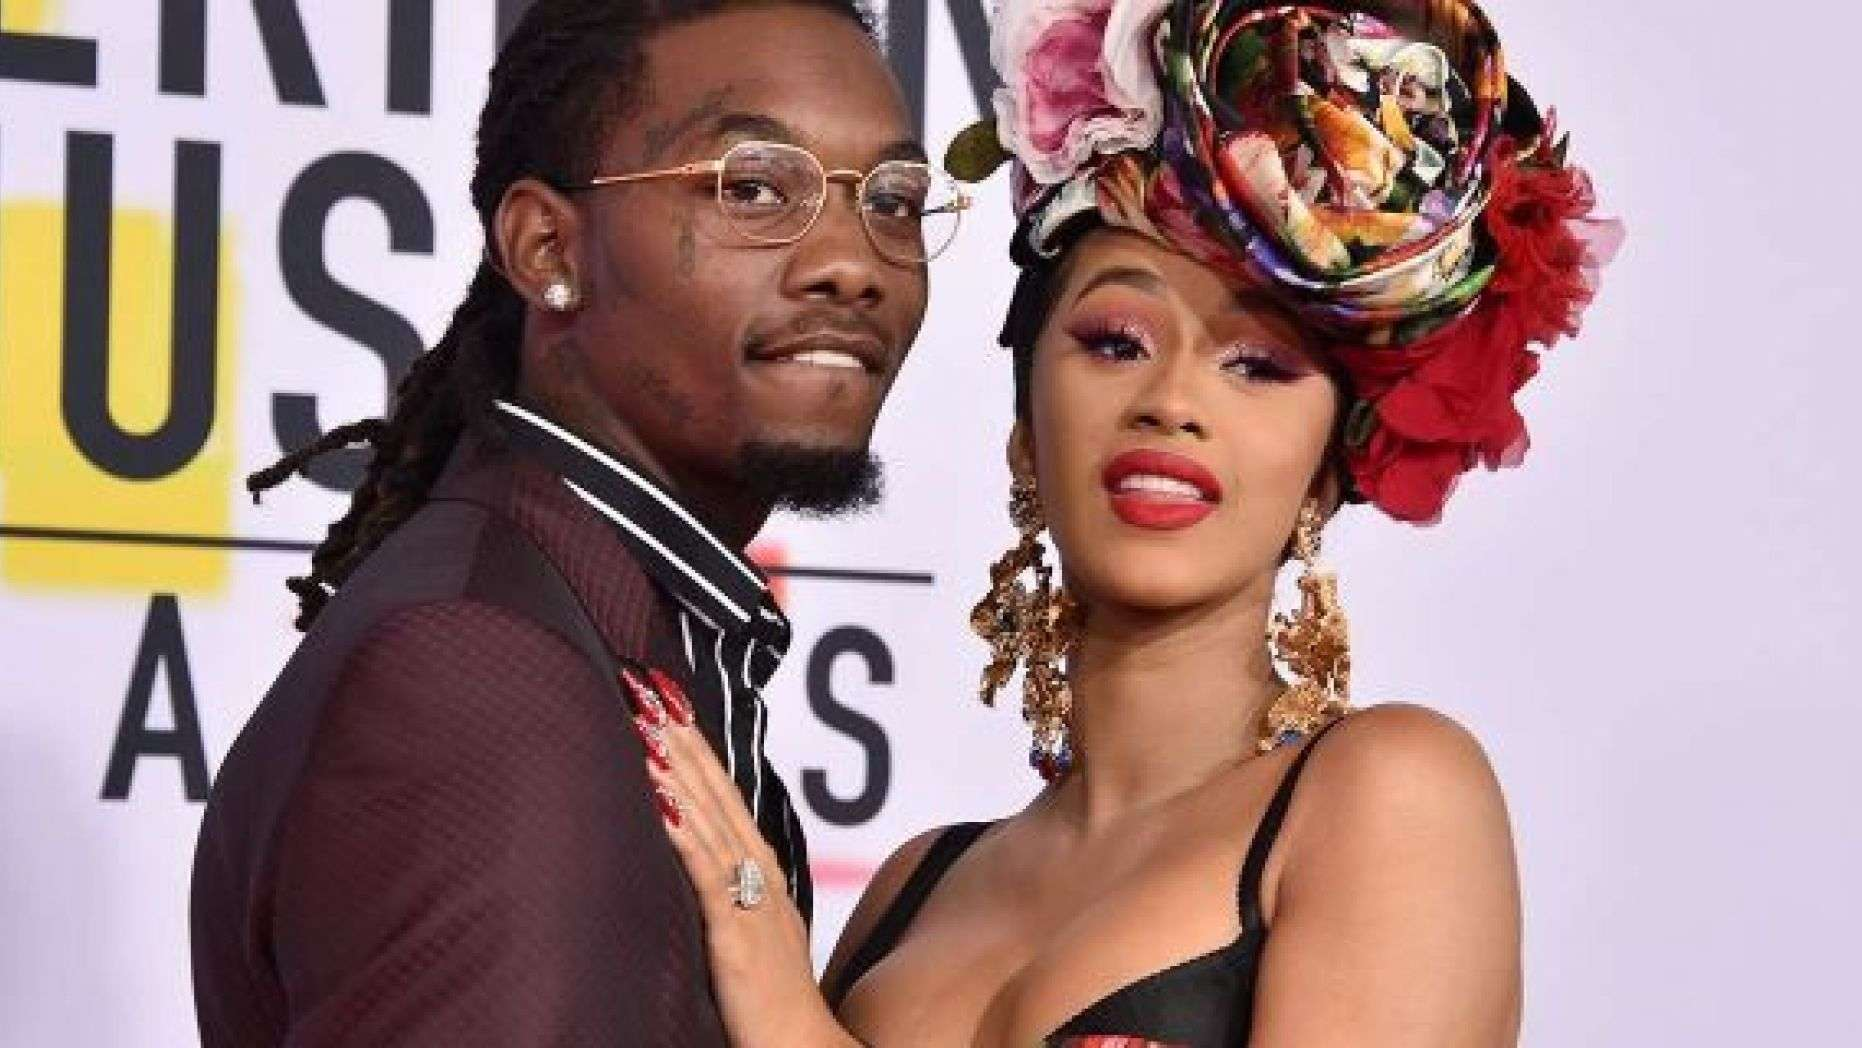 Cardi B S New Back Tattoo Might Be Her Biggest One Yet: Reason Cardi B And Offset Plan On Getting Back Together